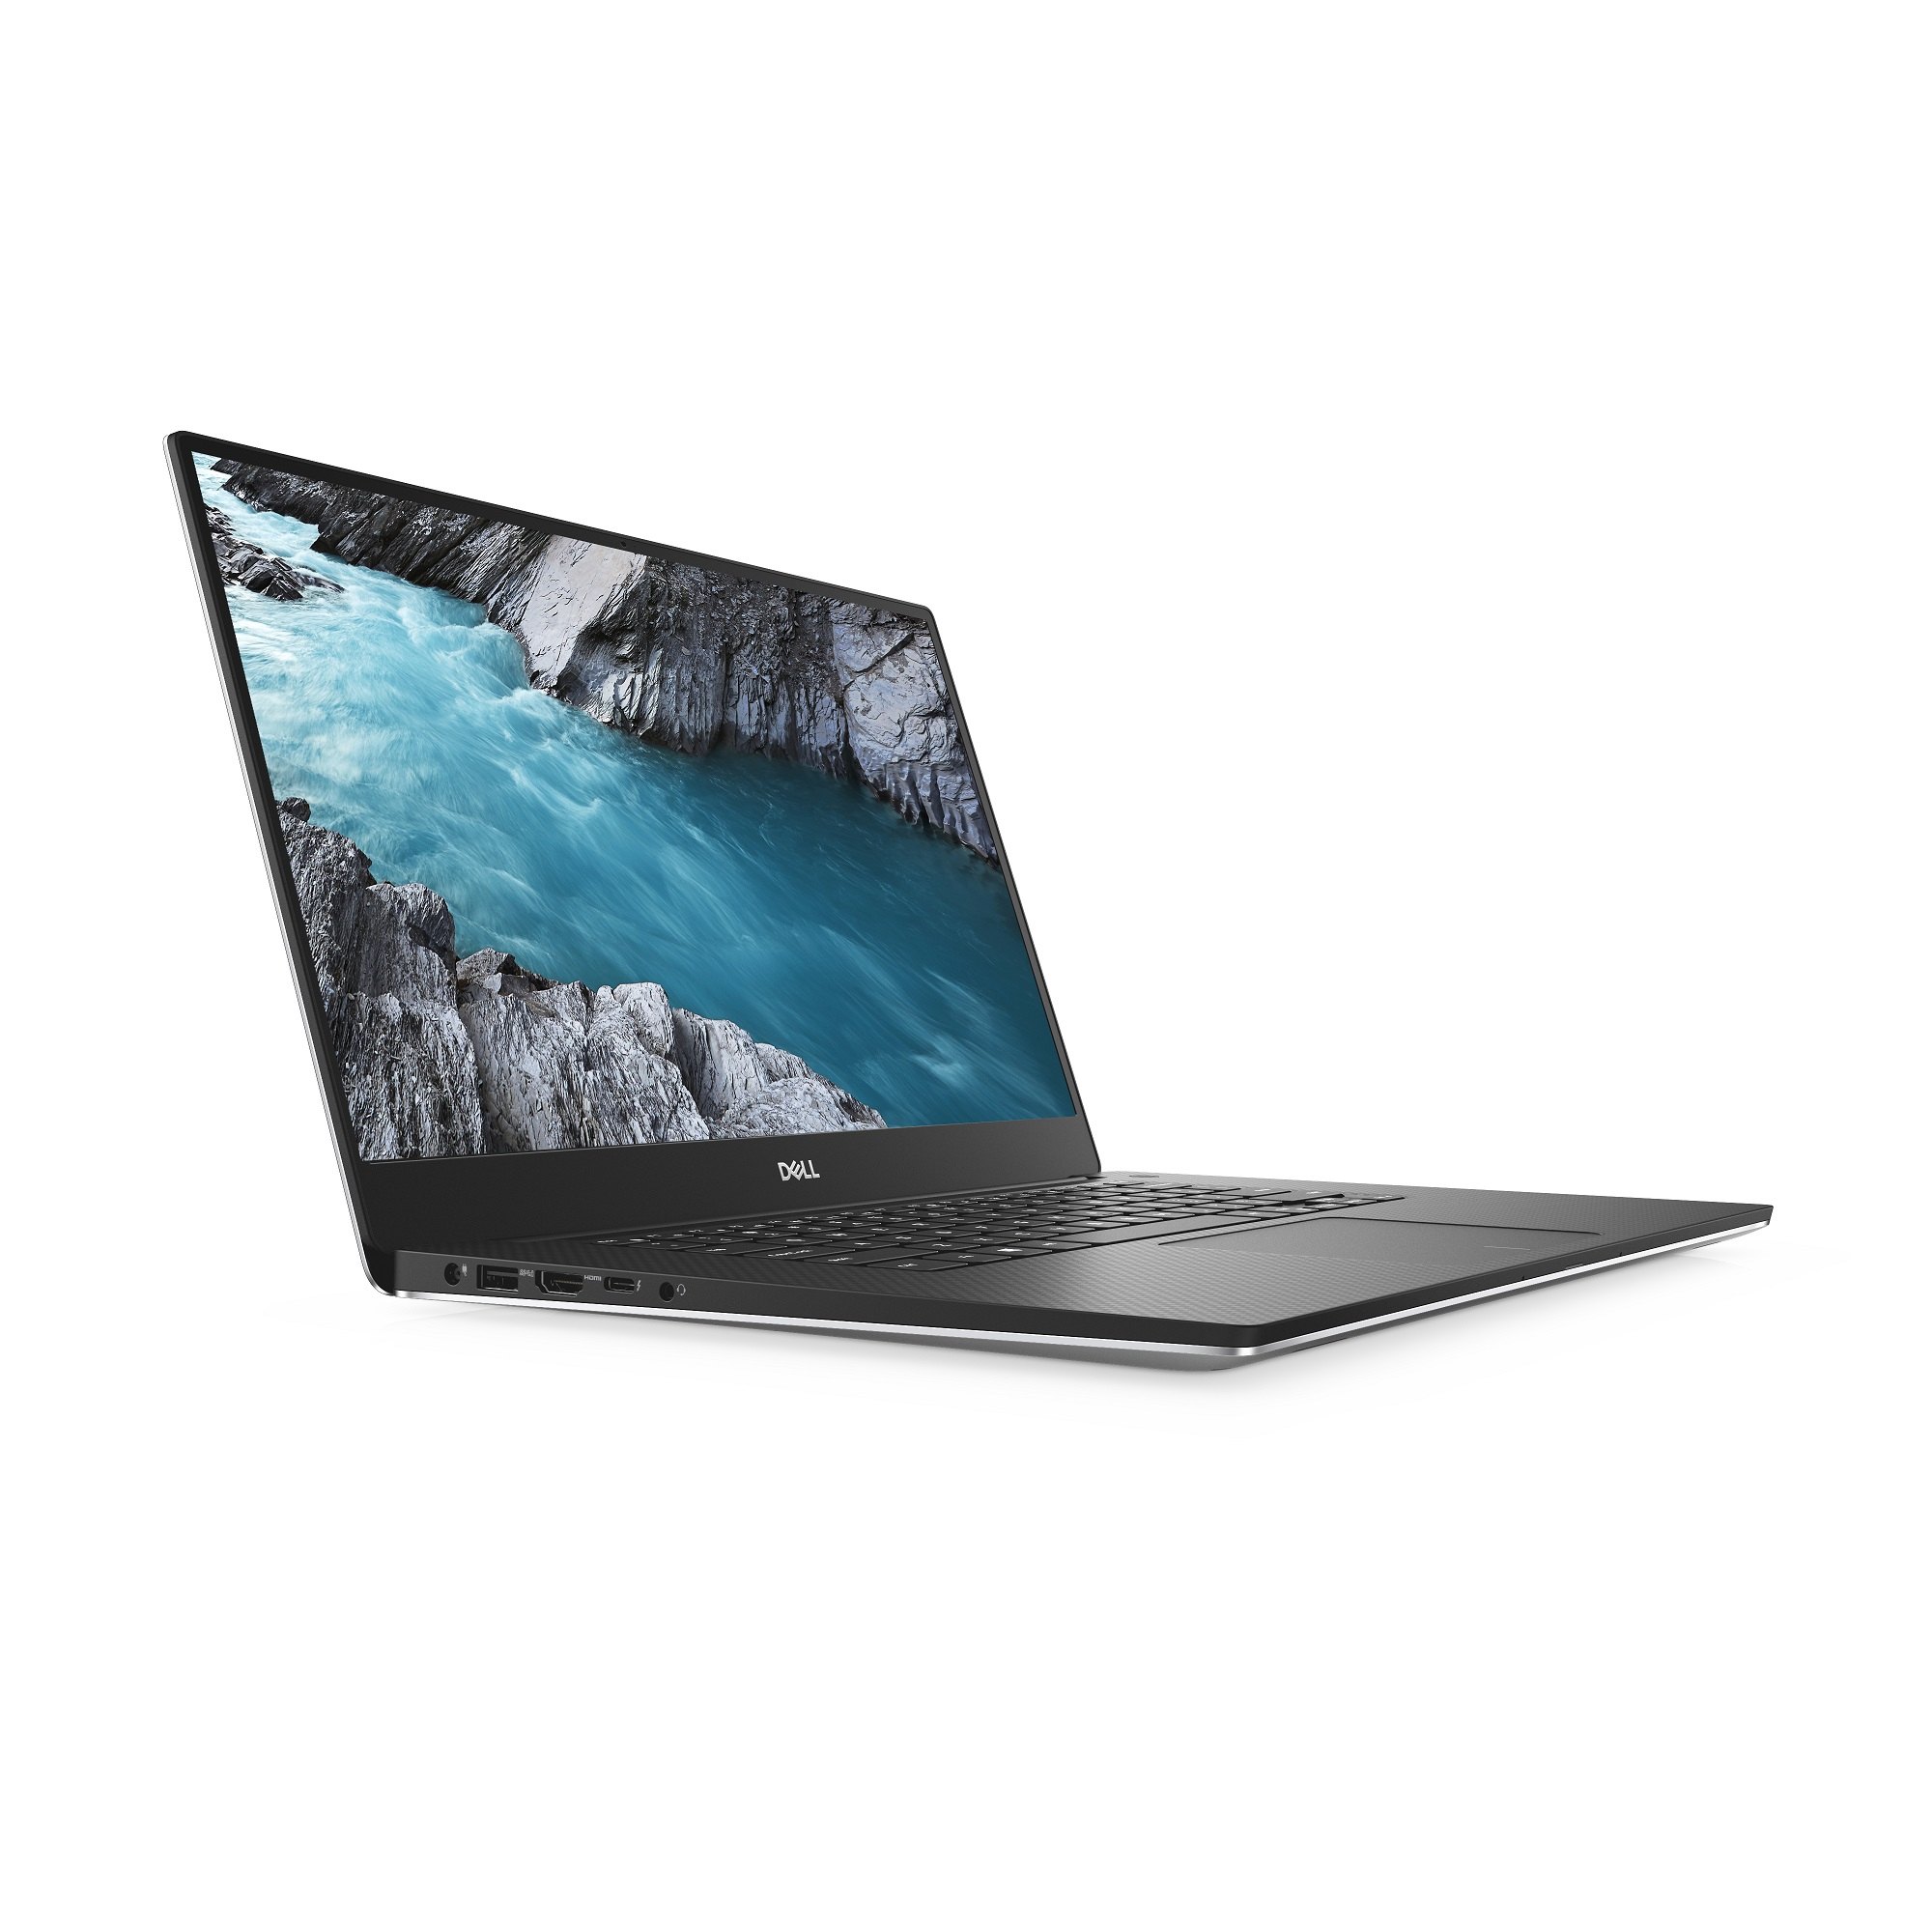 Laptop DELL XPS 15 7590 15,6 FHD HS LED i7-9300H 8GB 256GB SSD GTX1650 BK FPR Win10H 2YBWOS